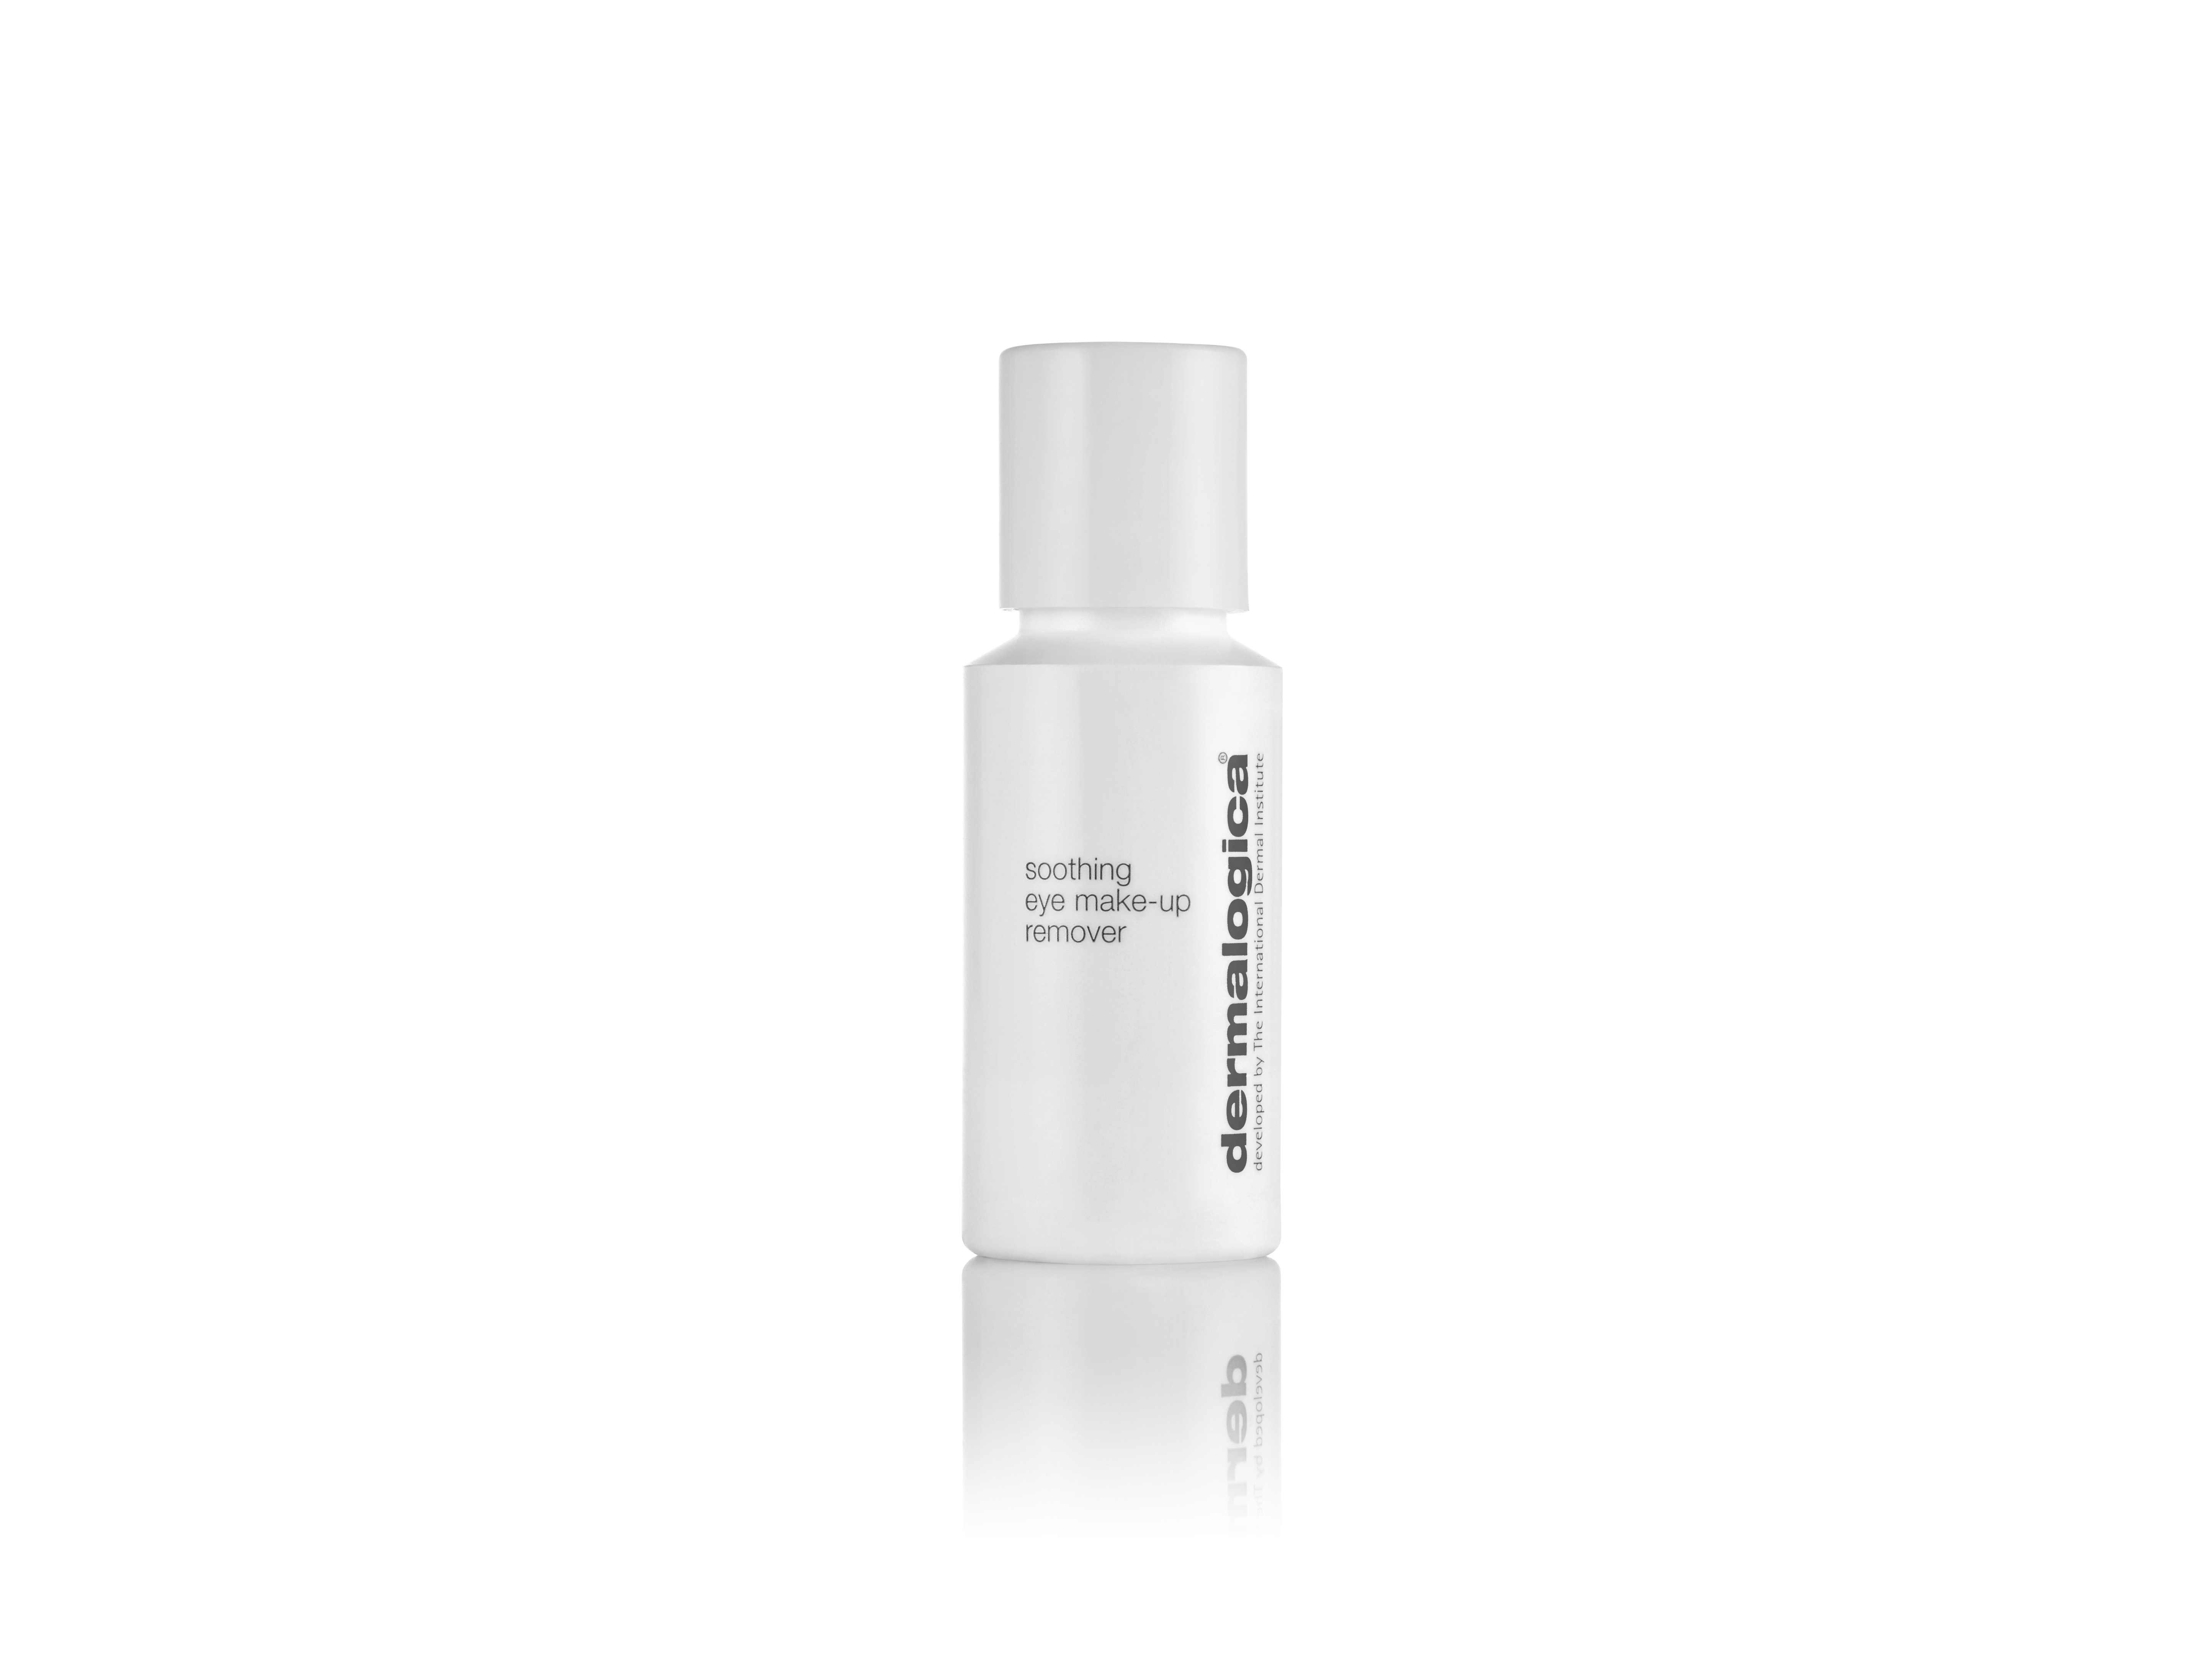 soothing eye make-up remover - travel